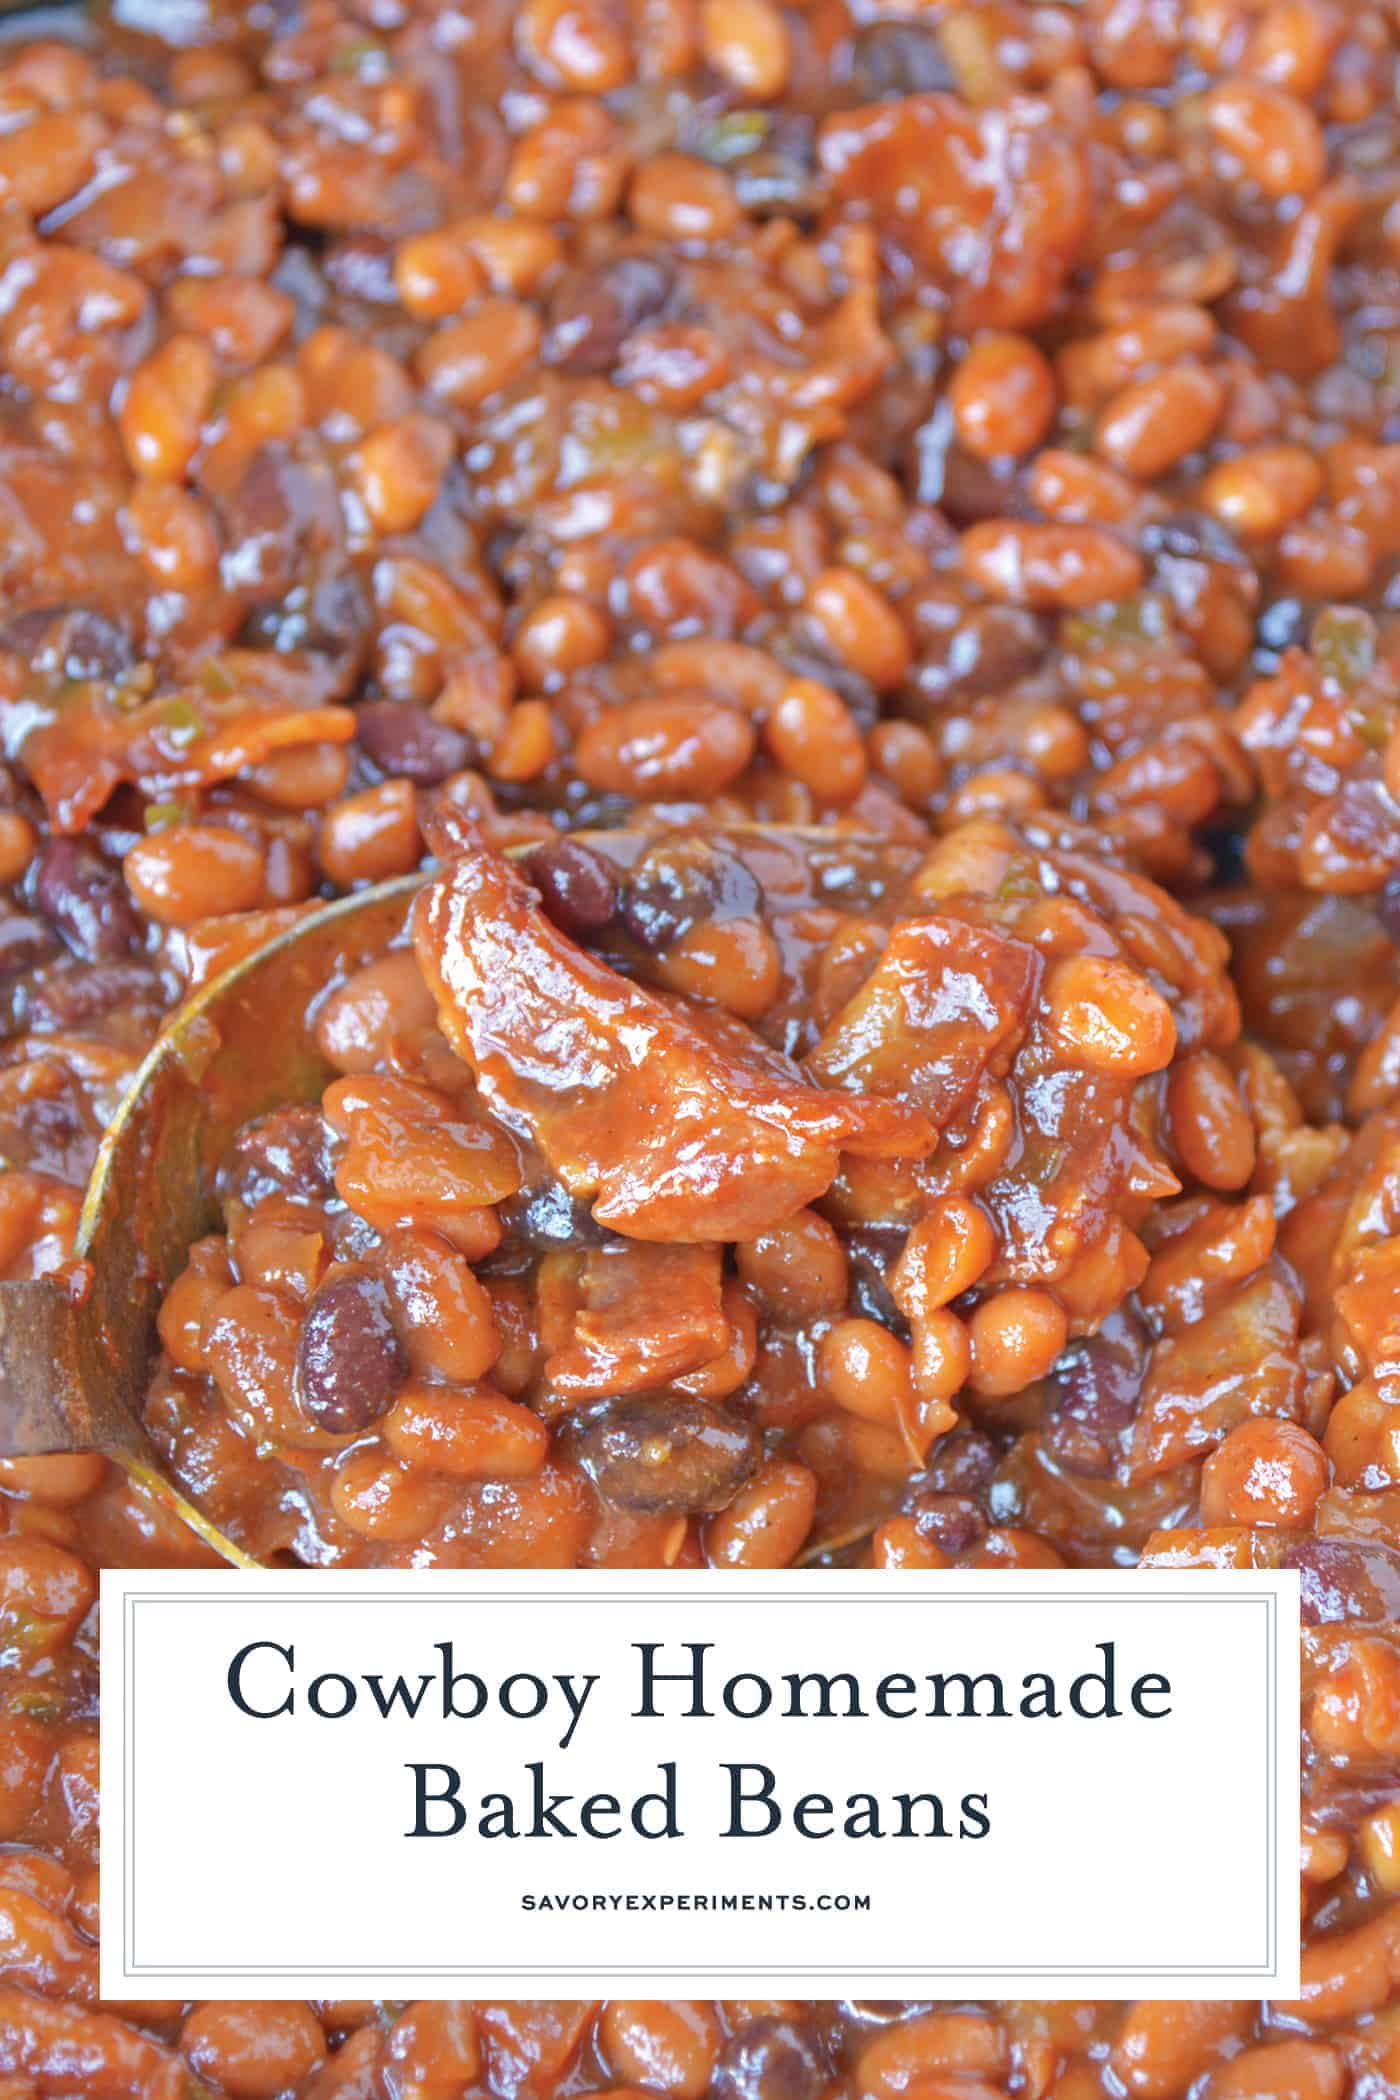 Cowboy Homemade Baked Beans are smoky, spicy and sweet. The perfect side dish recipe for BBQ, potlucks and parties. An easy baked bean recipe with loads of flavor! #homemadebakedbeans #bakedbeans www.savoryexperiments.com